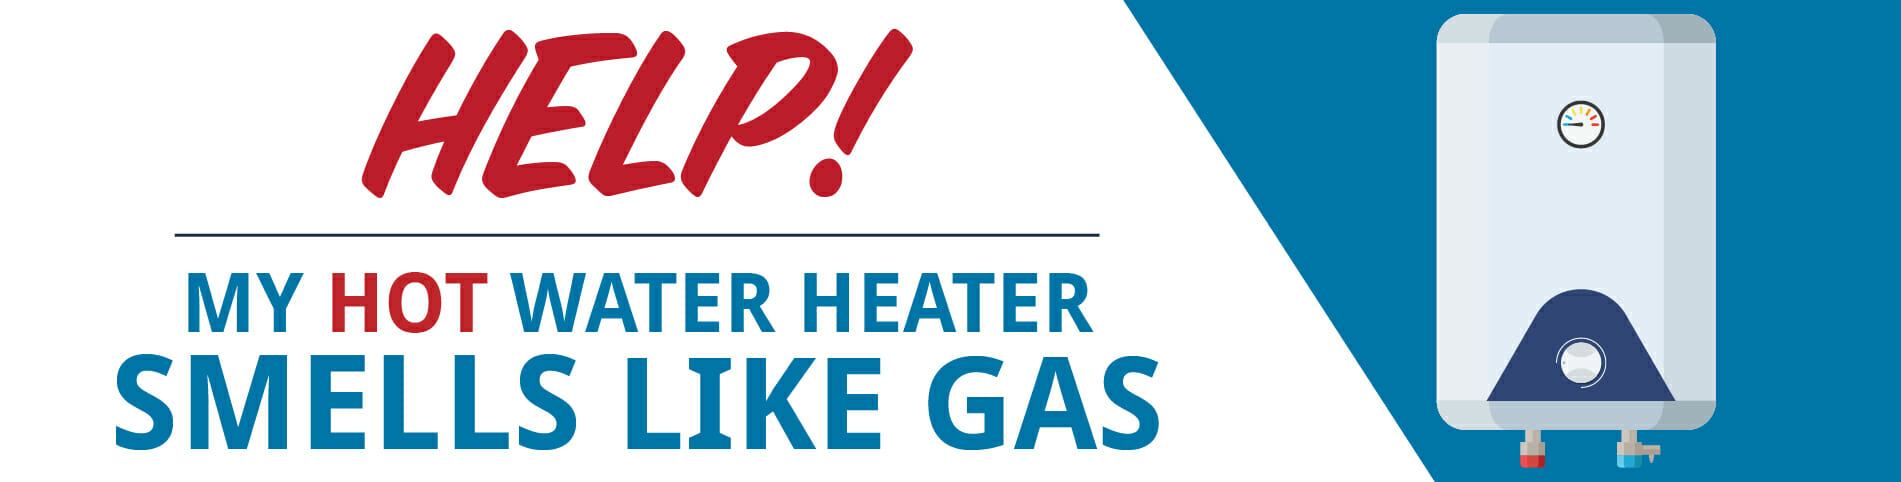 Help! My Hot Water Heater Smells Like Gas